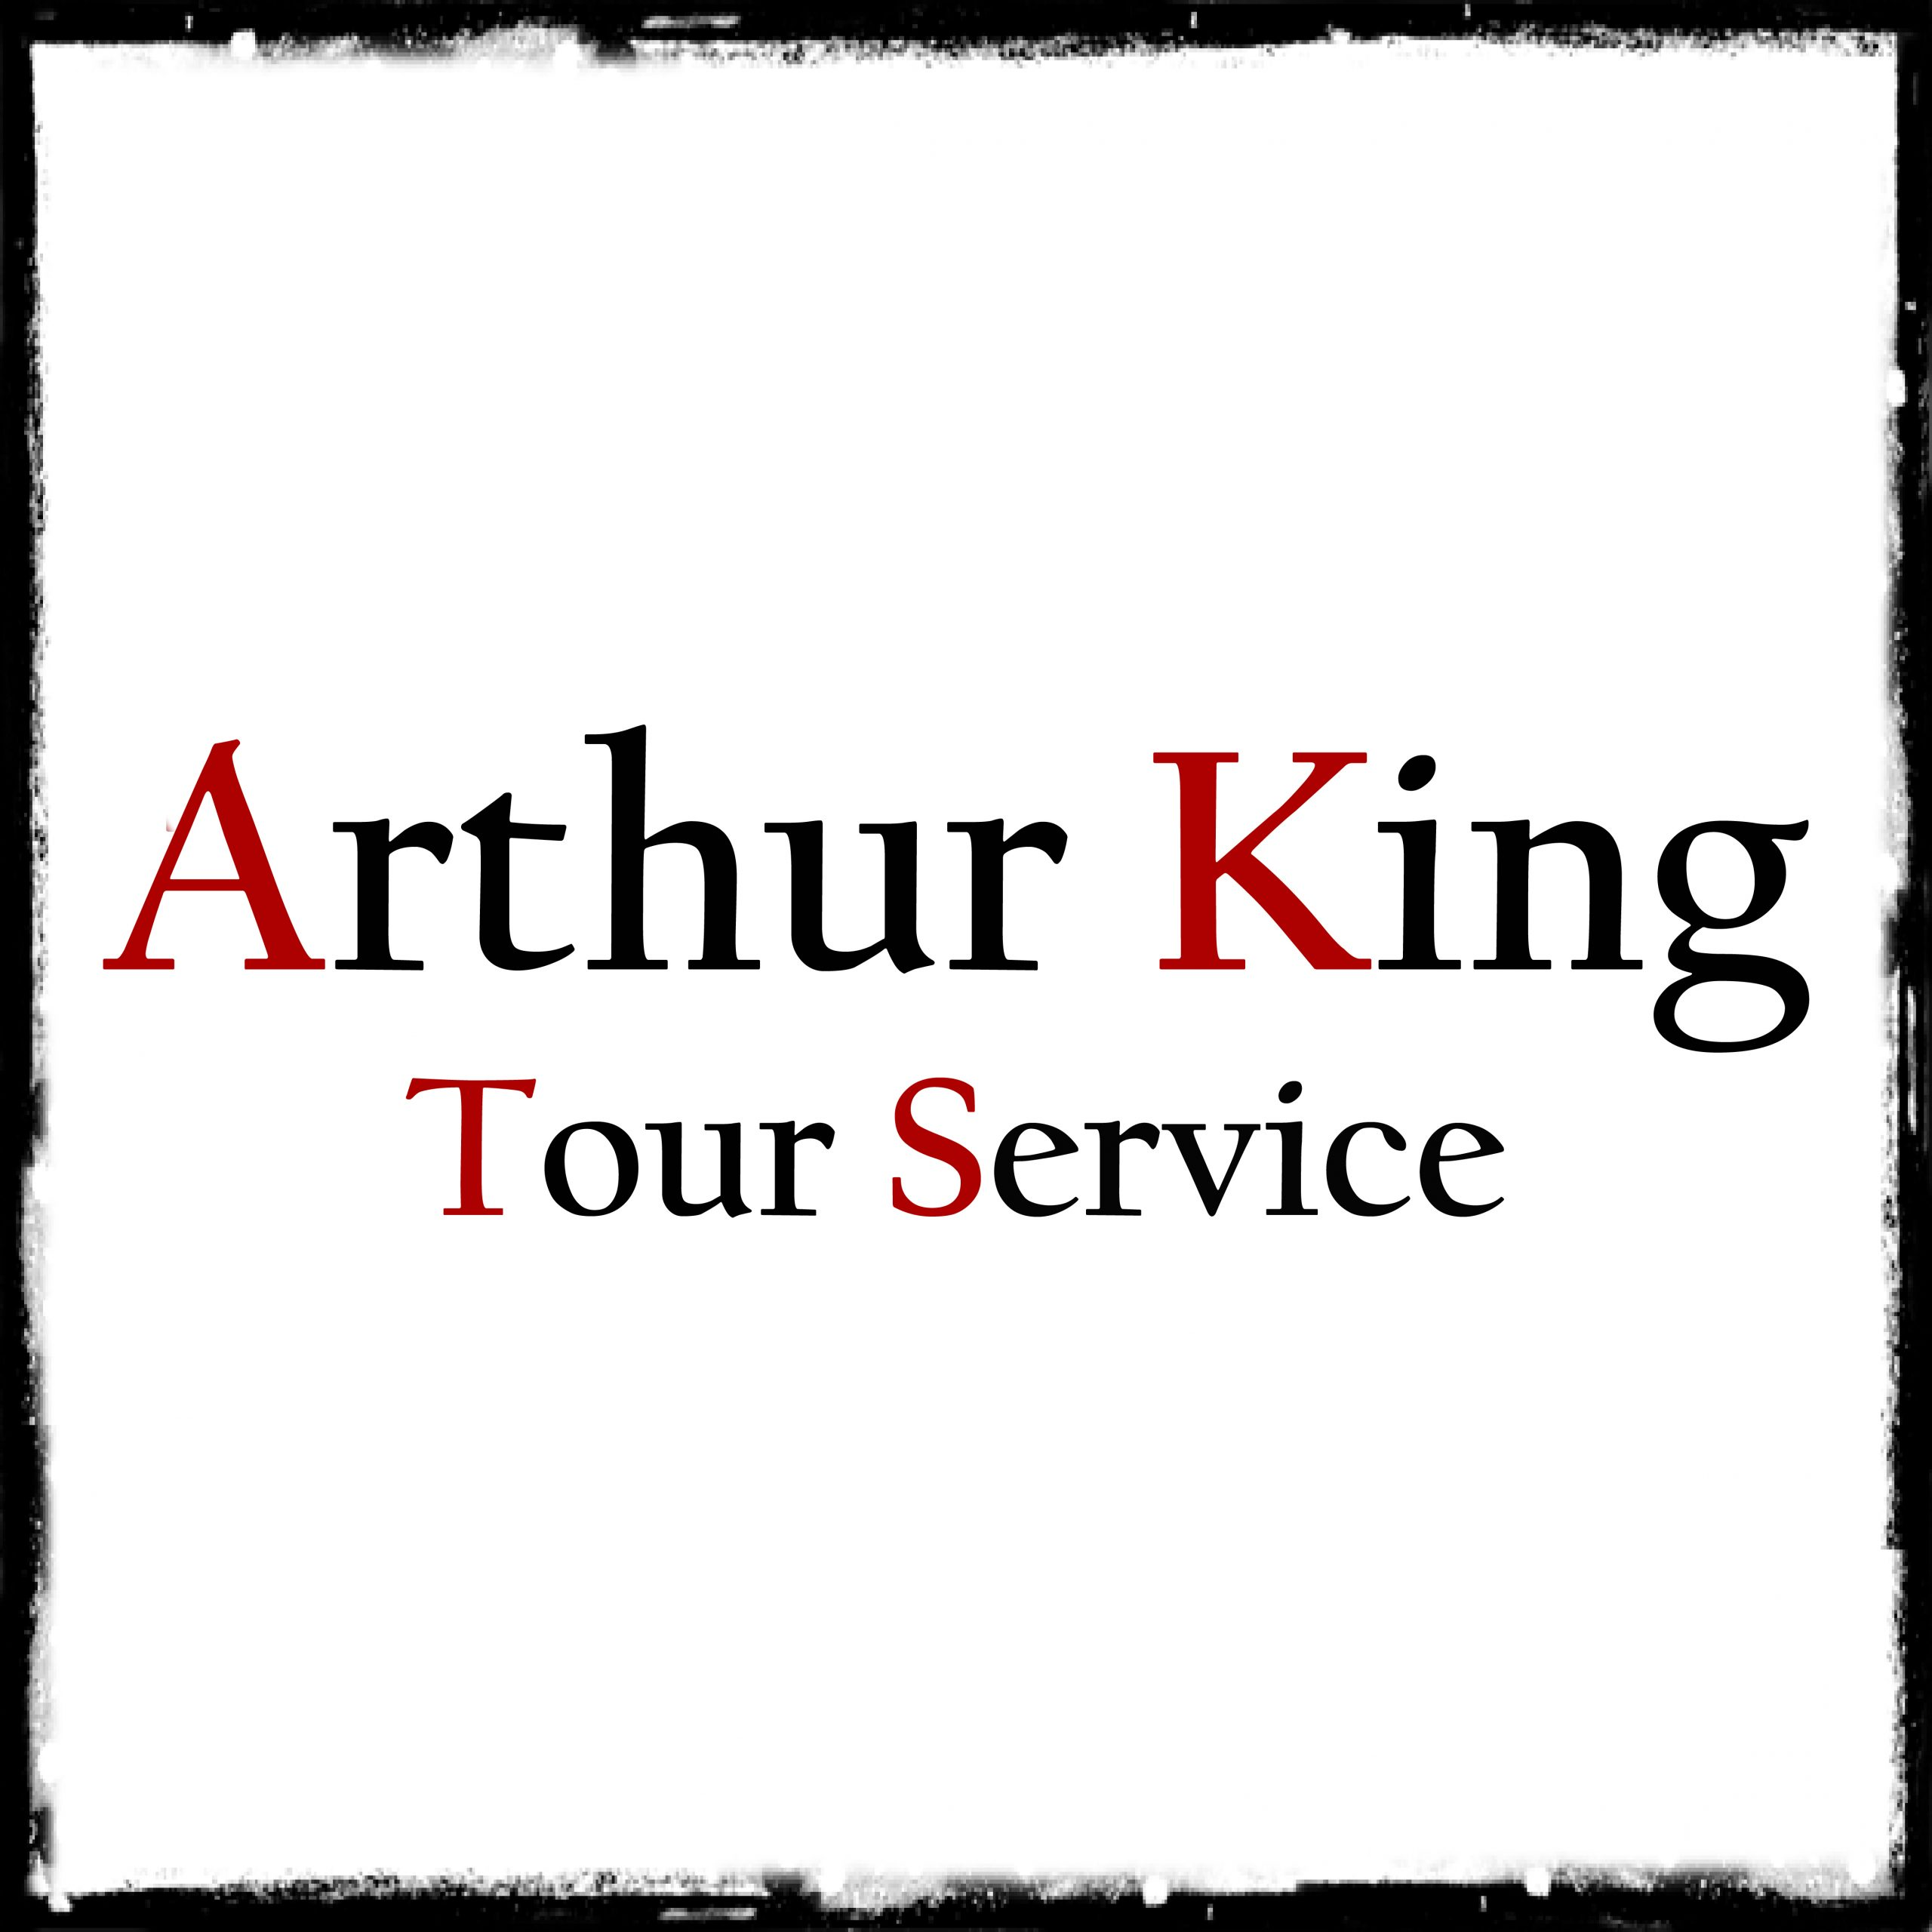 Arthur King Tour Service